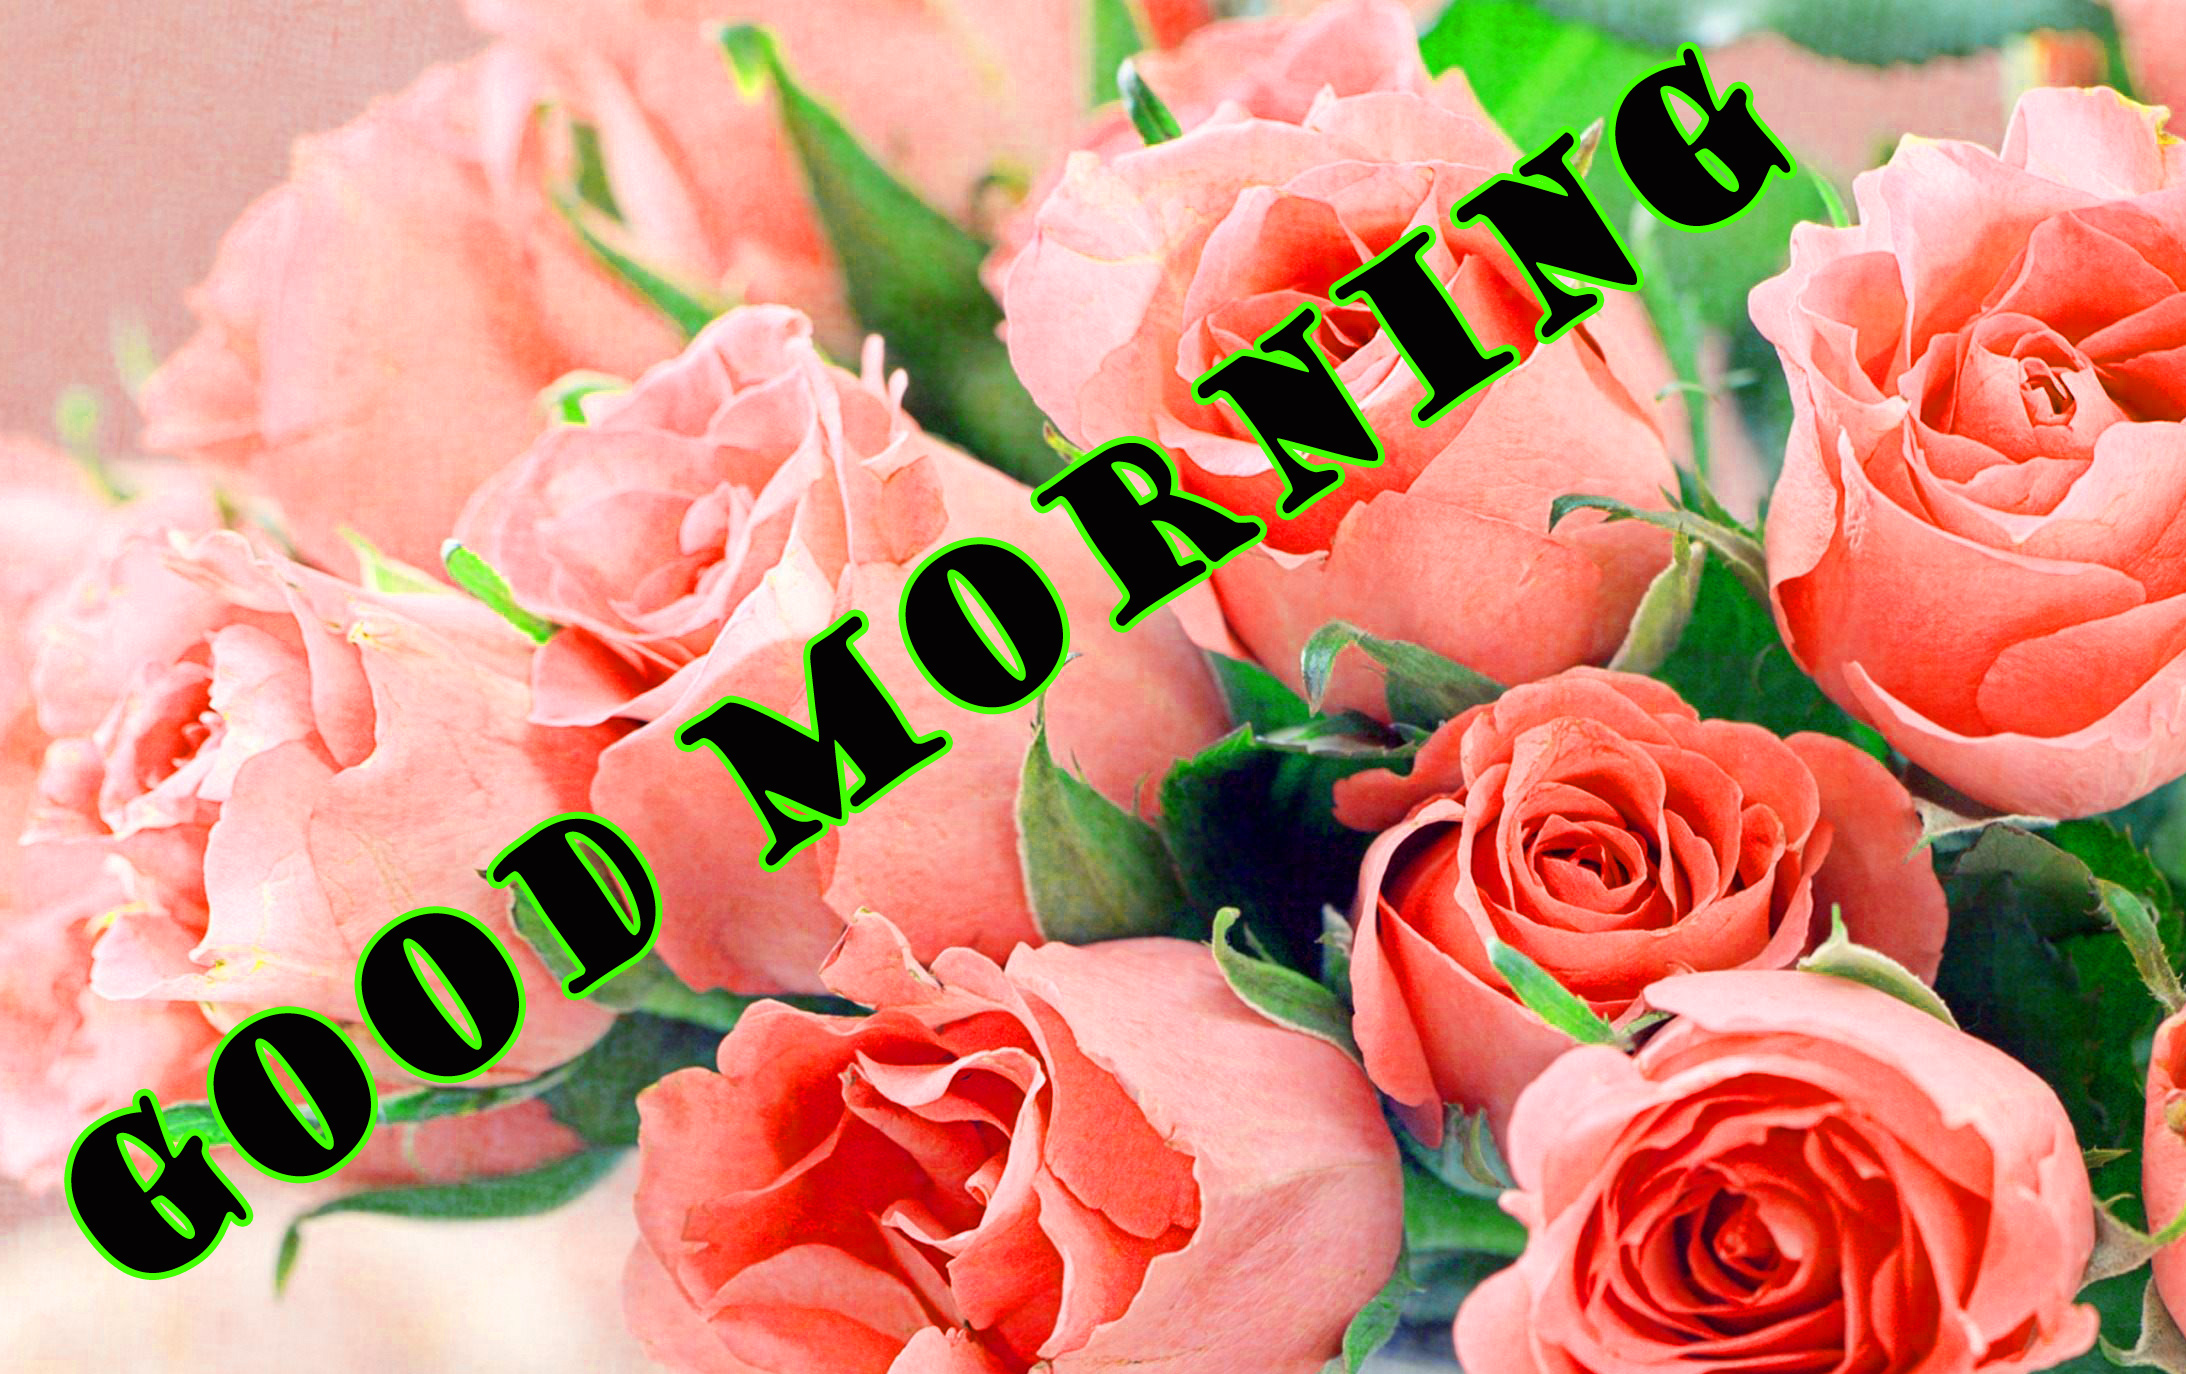 गुड मॉर्निंग New Wonderful Good Morning Pictures Images Photo HD